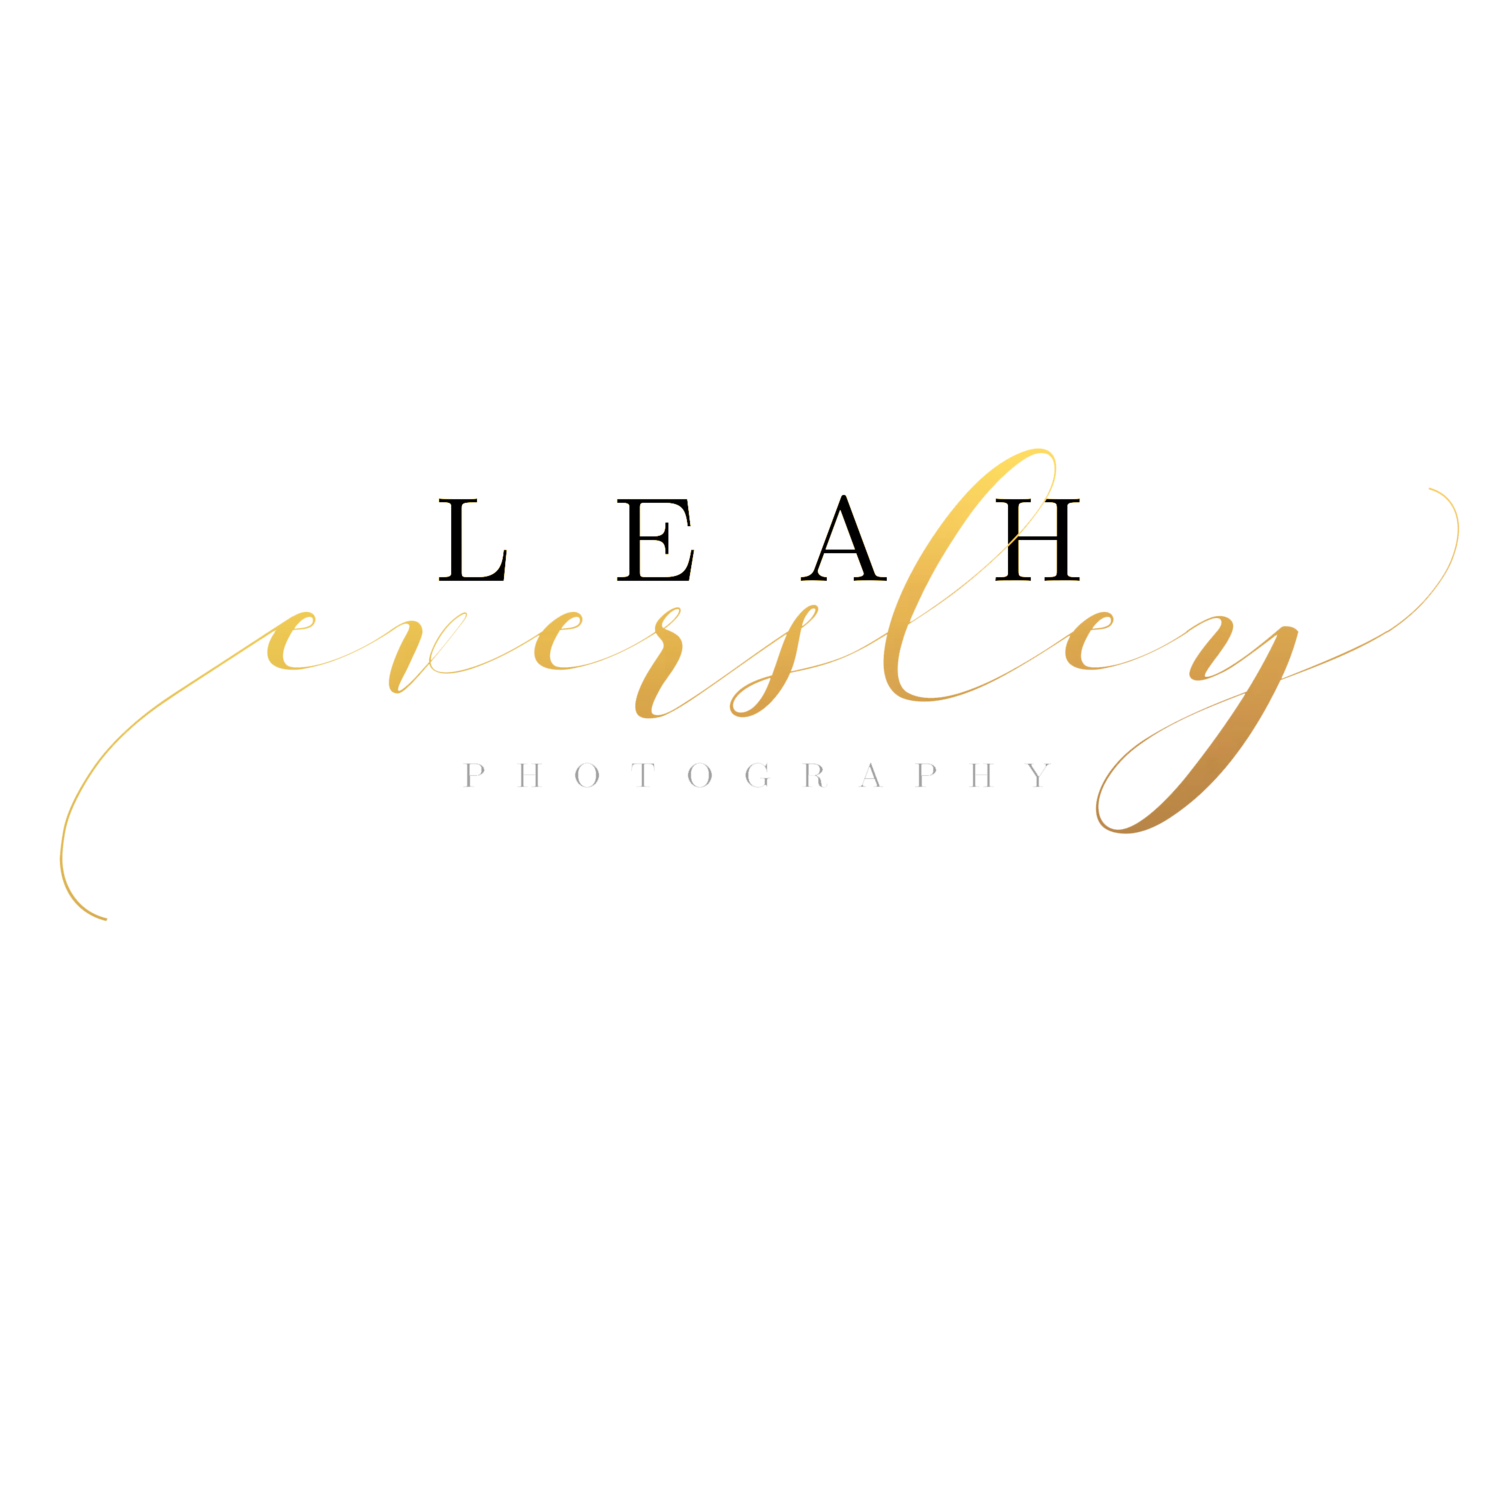 Leah Eversley Photography